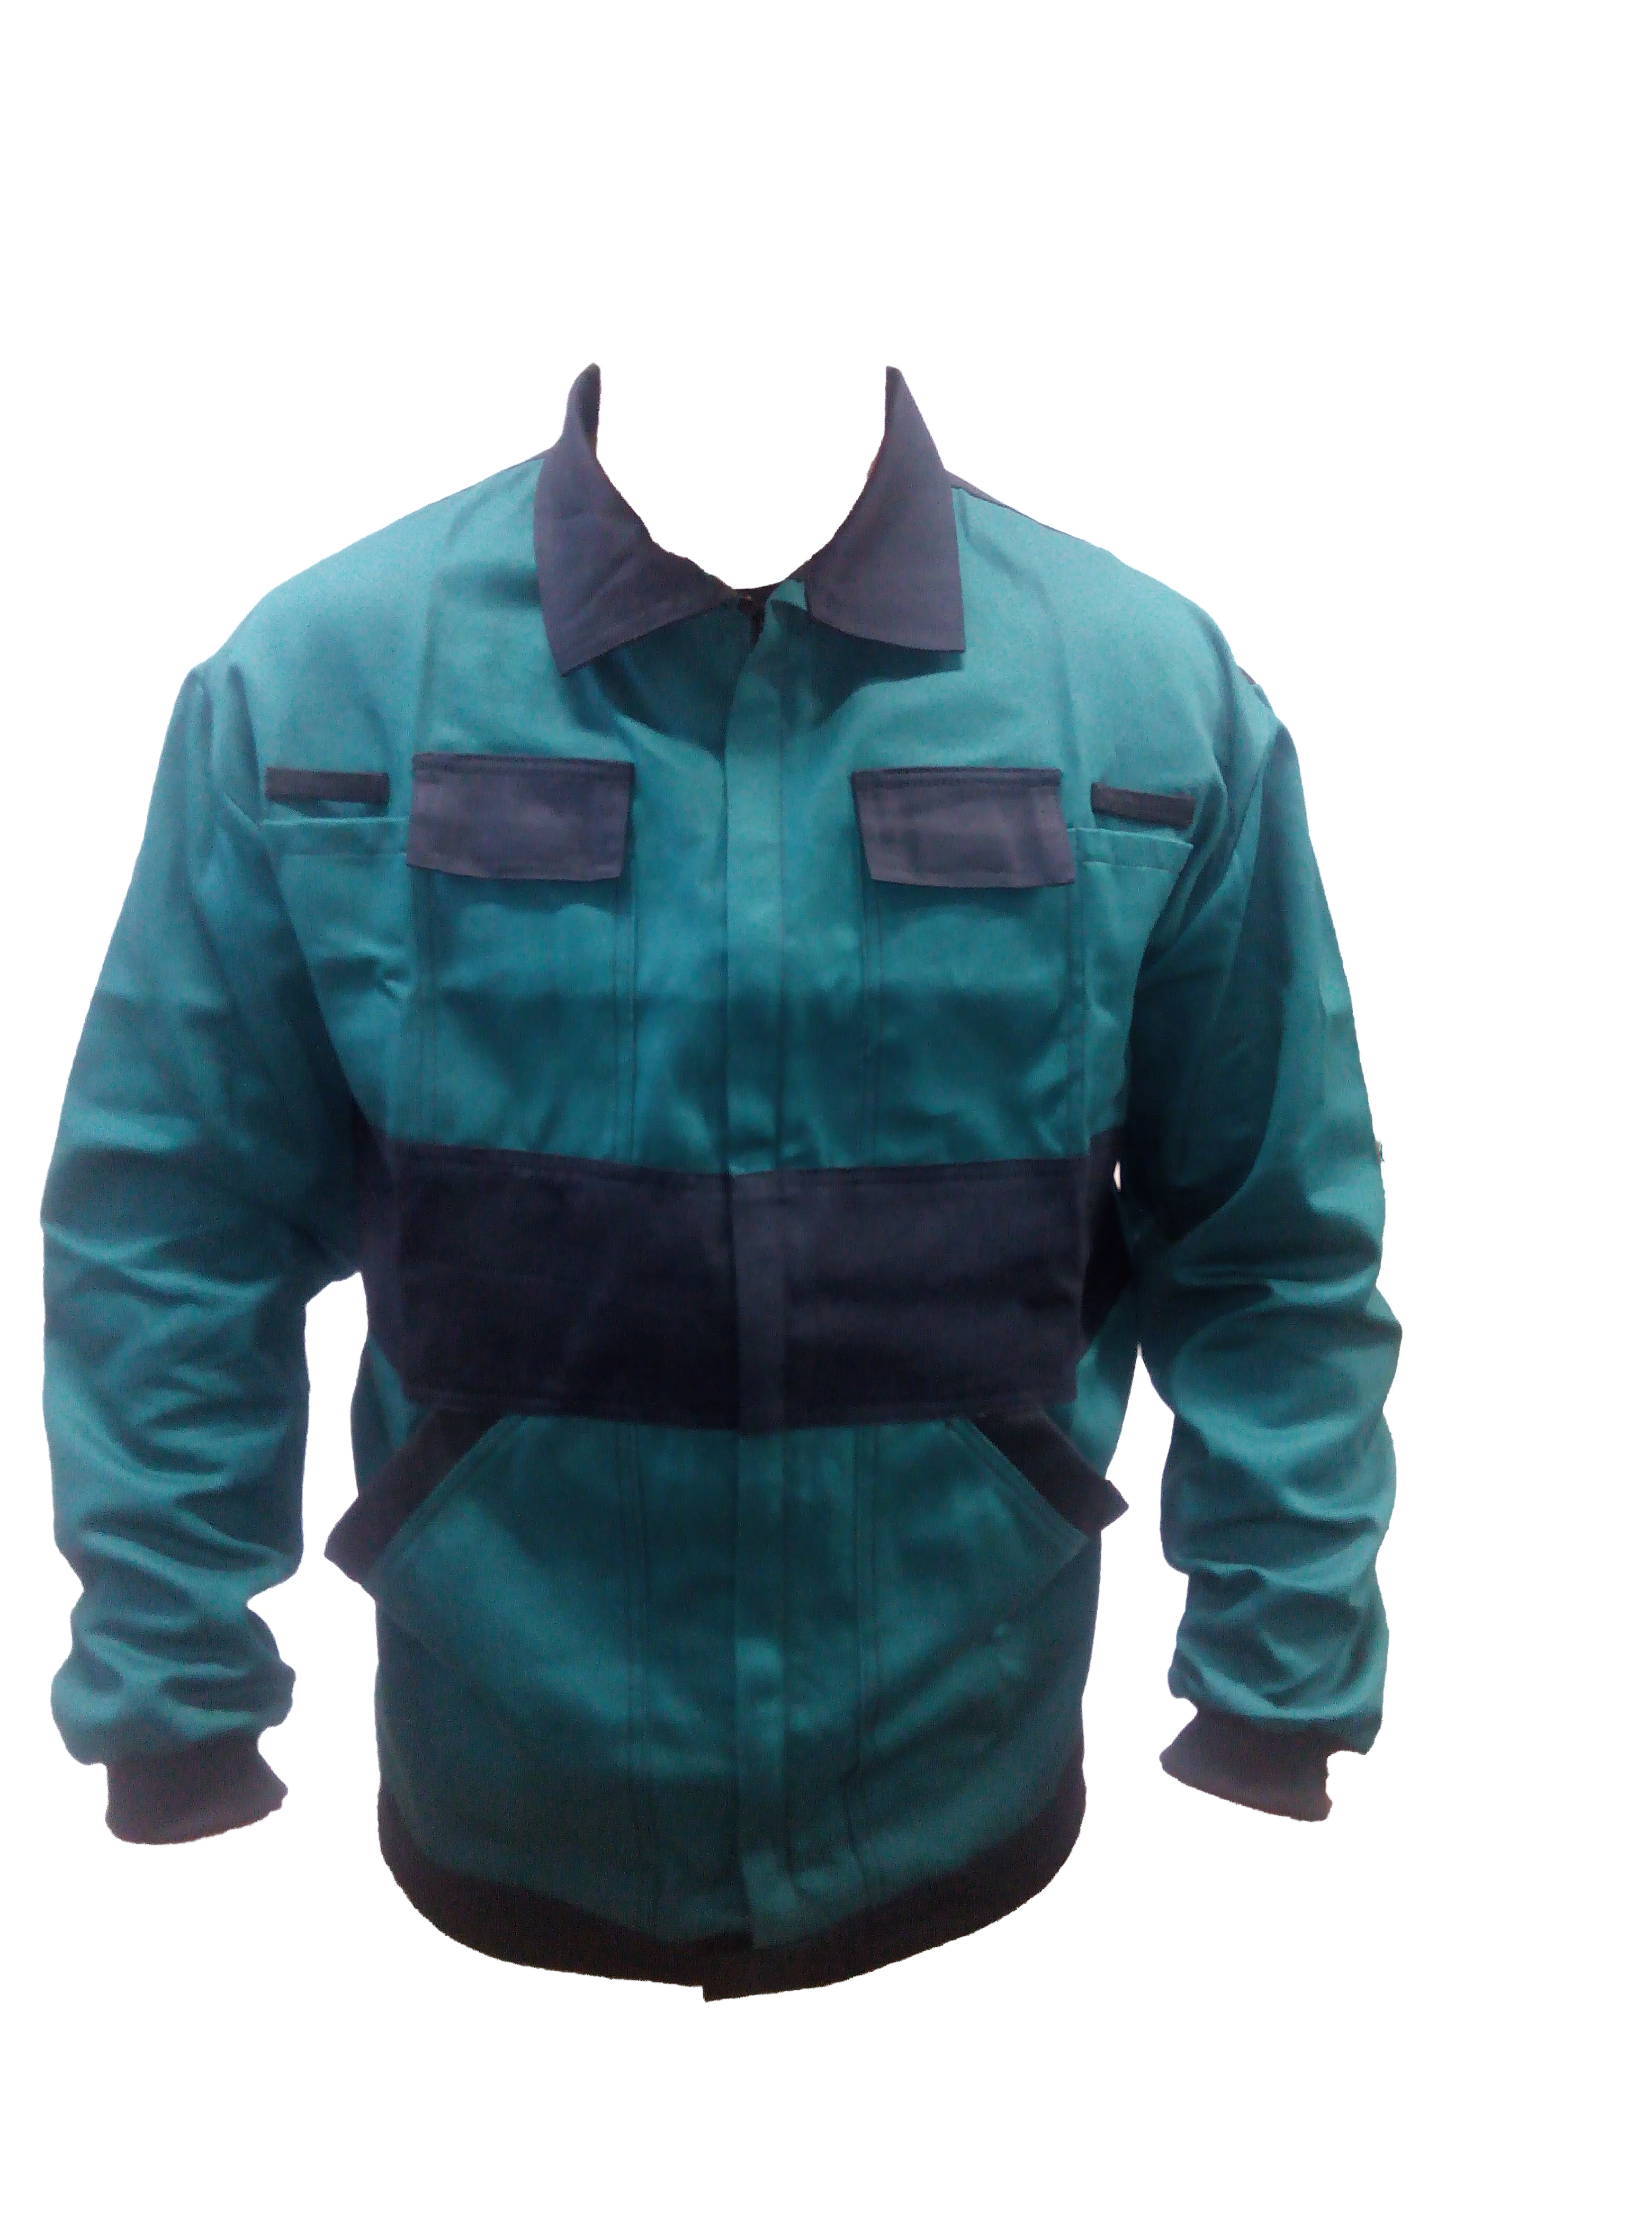 Promo: Prime DEX 101-668 Green - Black Jacket